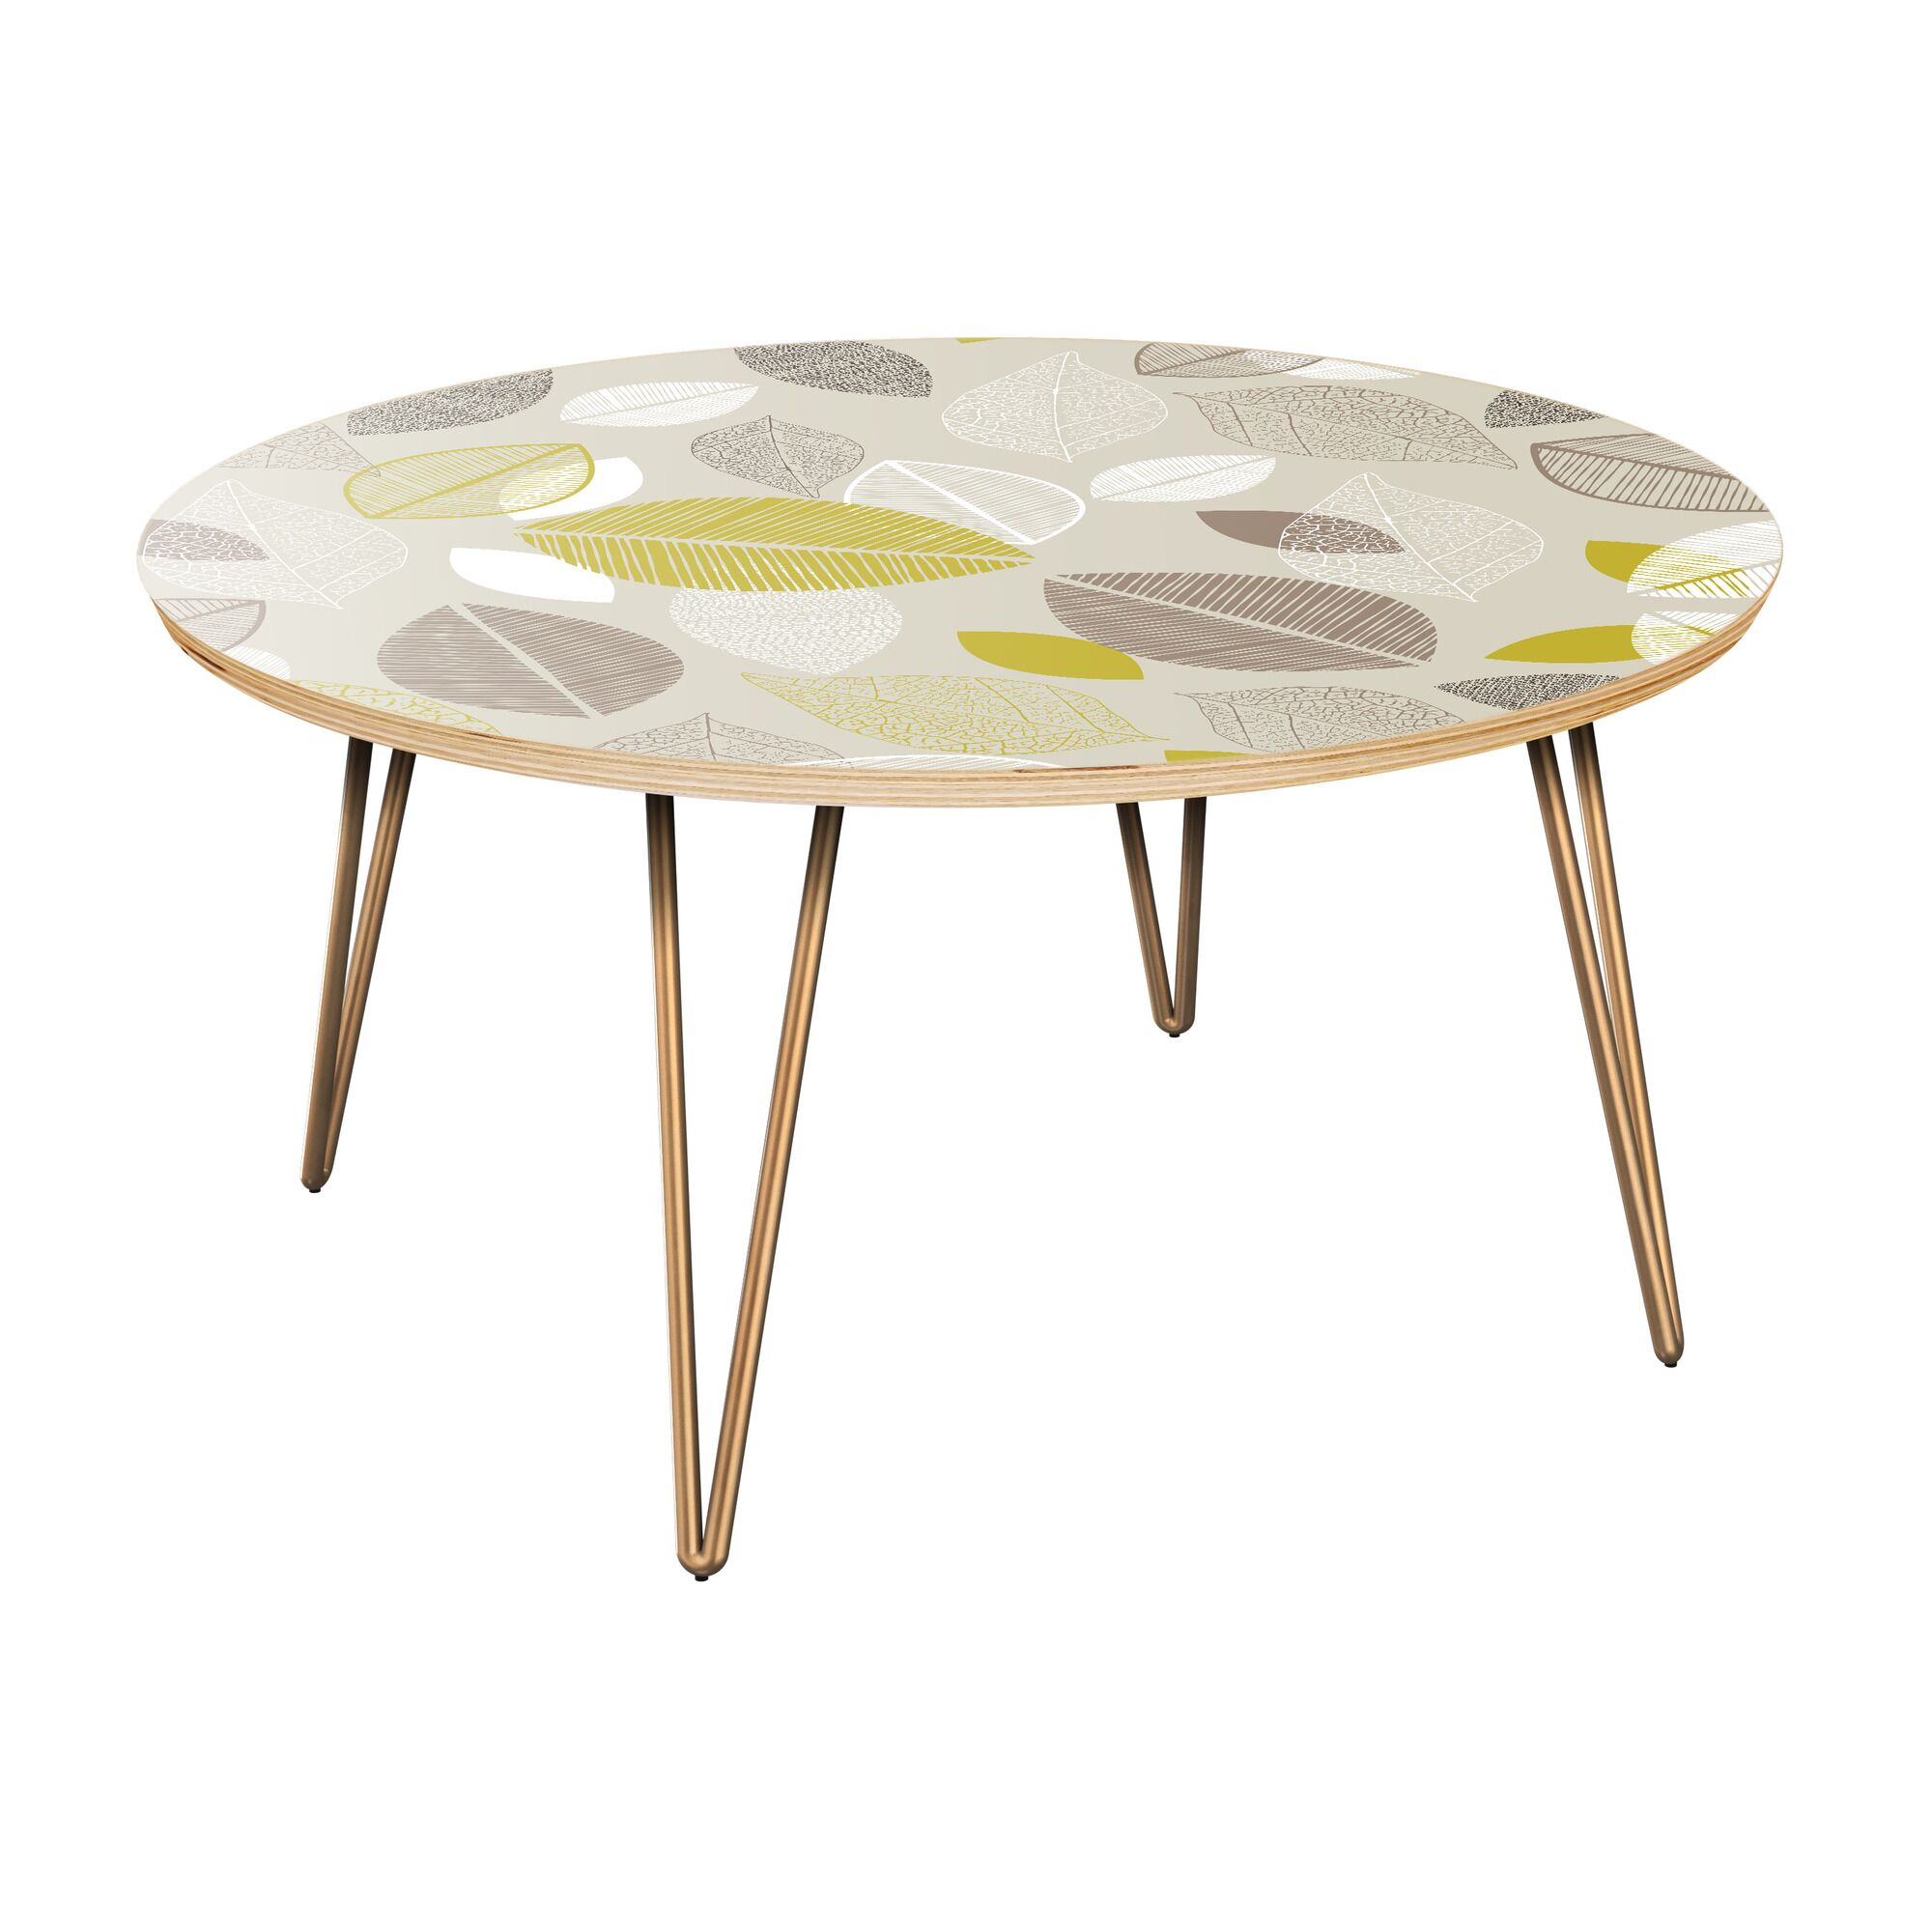 Joshuah Coffee Table Table Top Boarder Color: Natural, Table Base Color: Brass, Table Top Color: Green/Brown